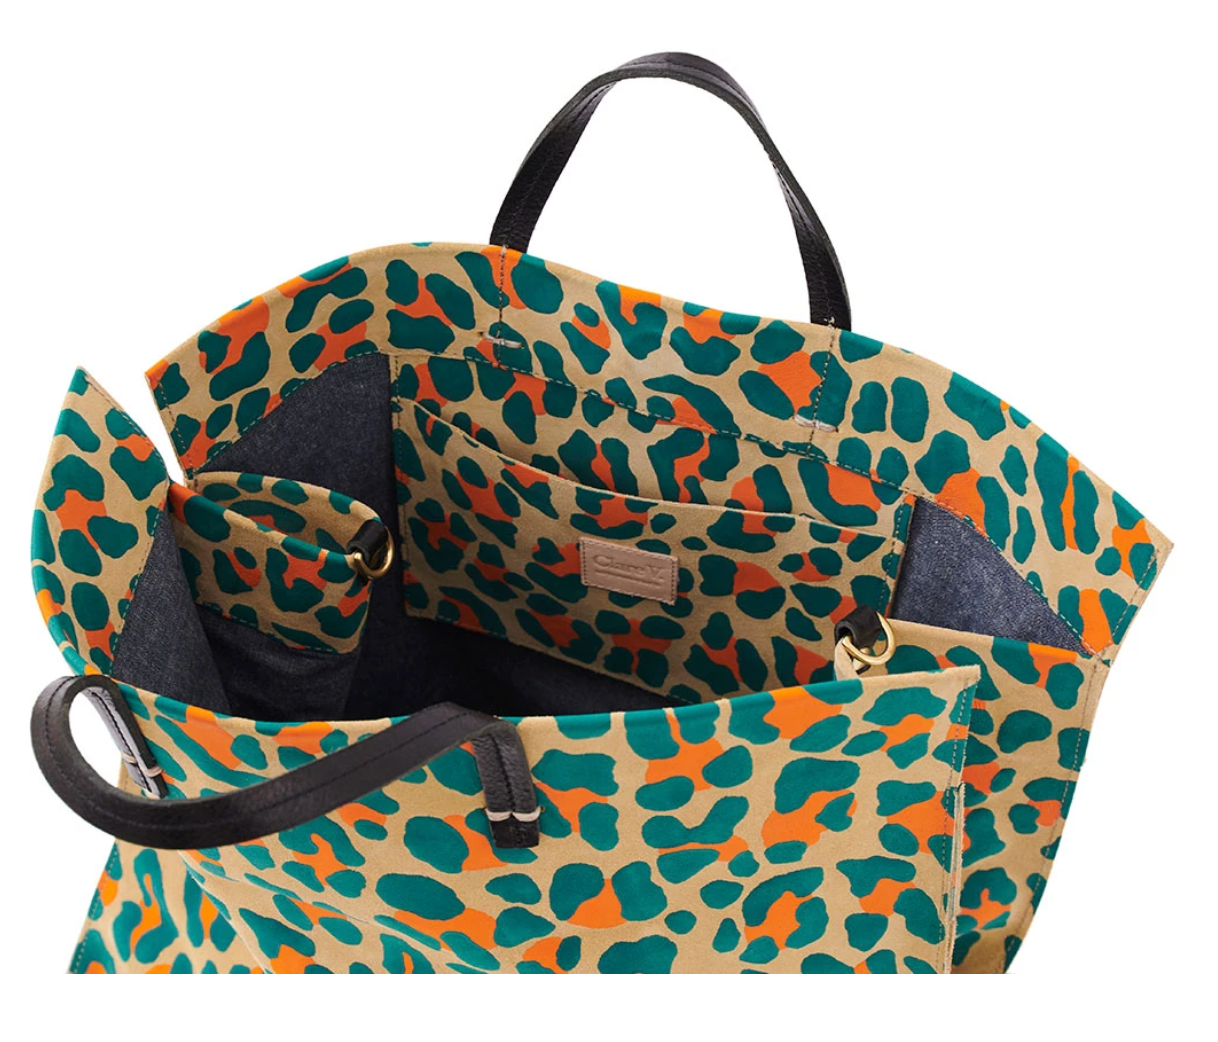 Clare Vivier simple Tote - Neon Cat Suede Teal